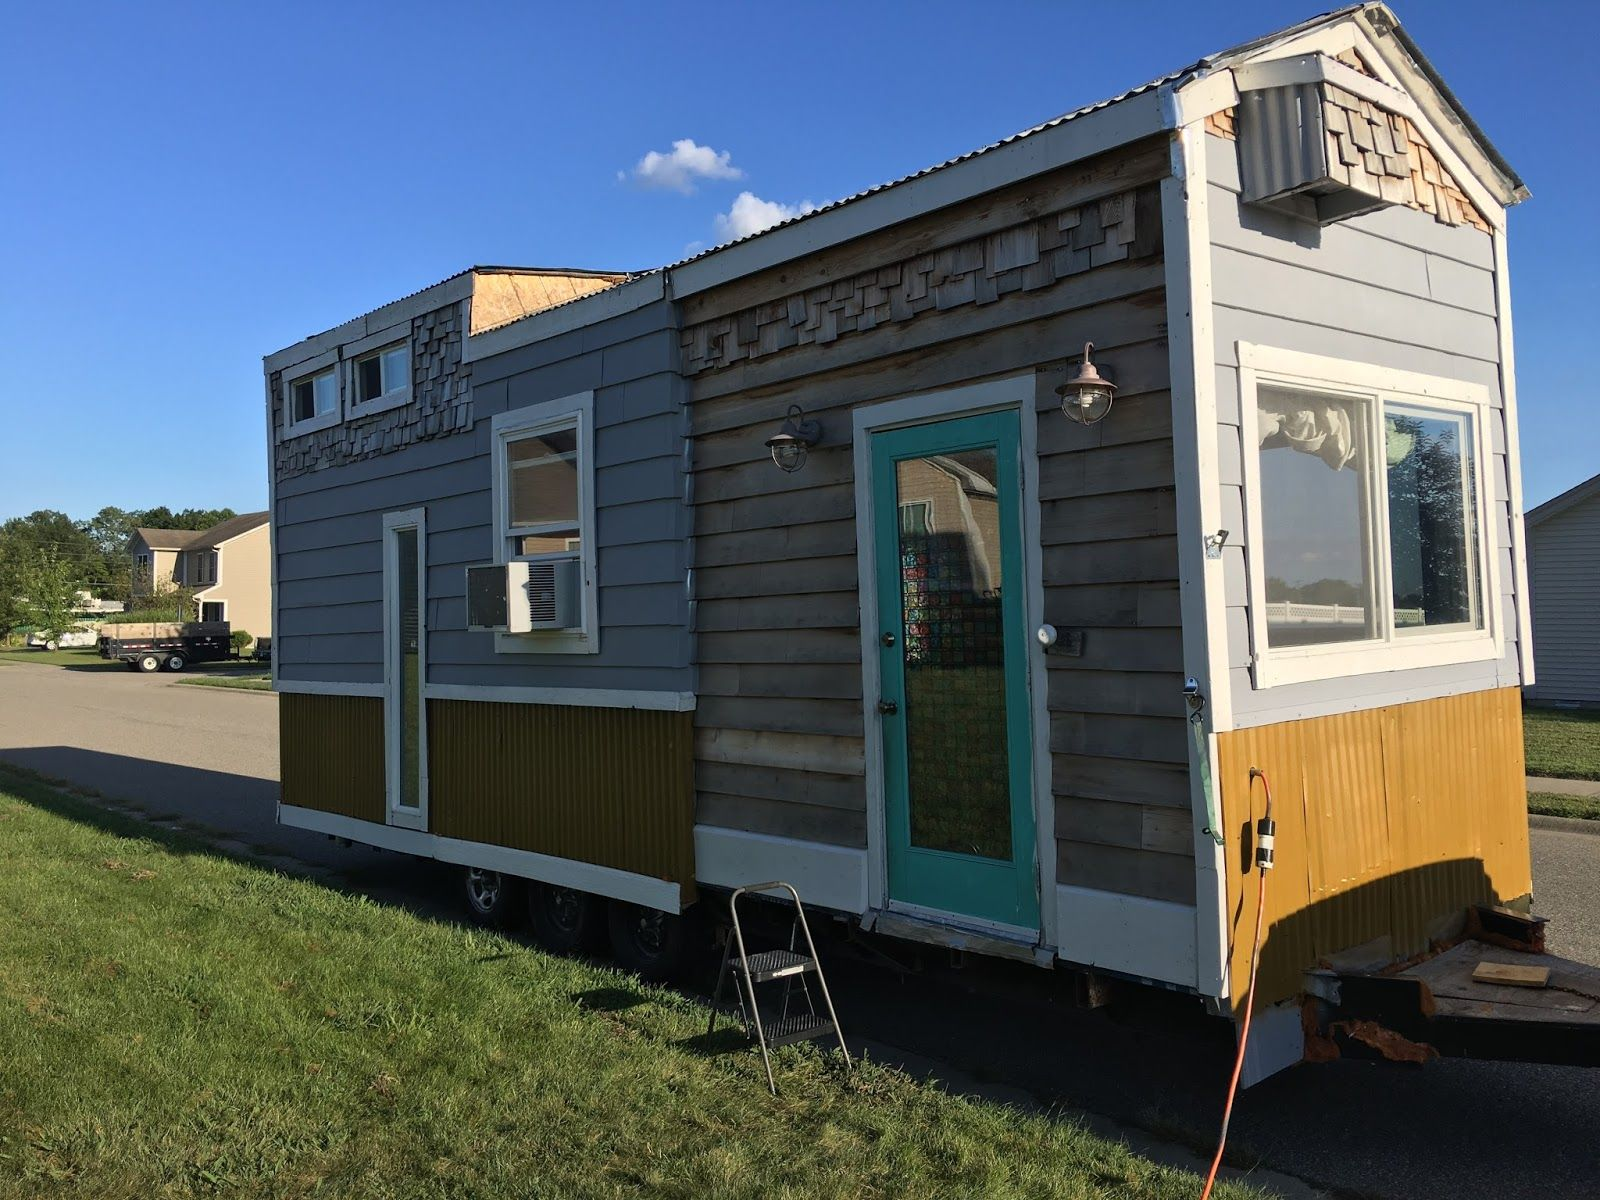 A Tiny House In Southern Indiana With A Unique Look The Home Is Currently Available For Sale For 30 000 Tiny House Towns Tiny House Tiny Houses For Sale